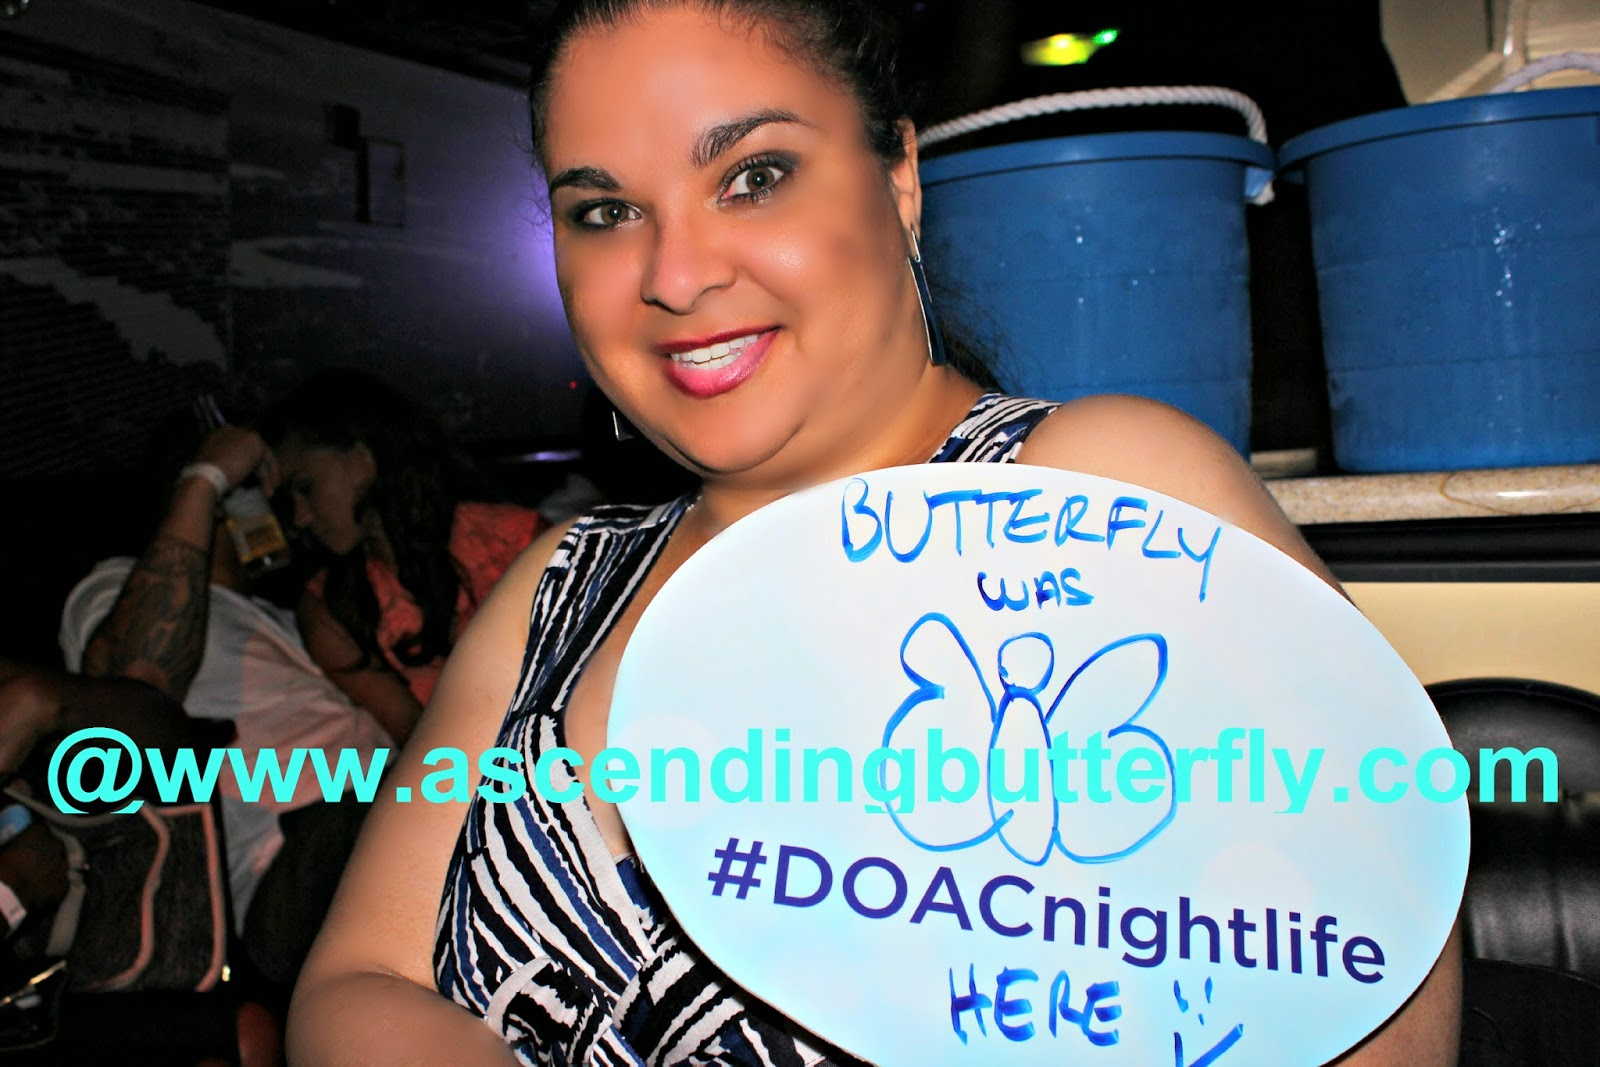 #DOACNightlife Bus, Party Bus, Atlantic City, Visit AC, Atlantic City Alliance, DO AC, DO AC Nightlife